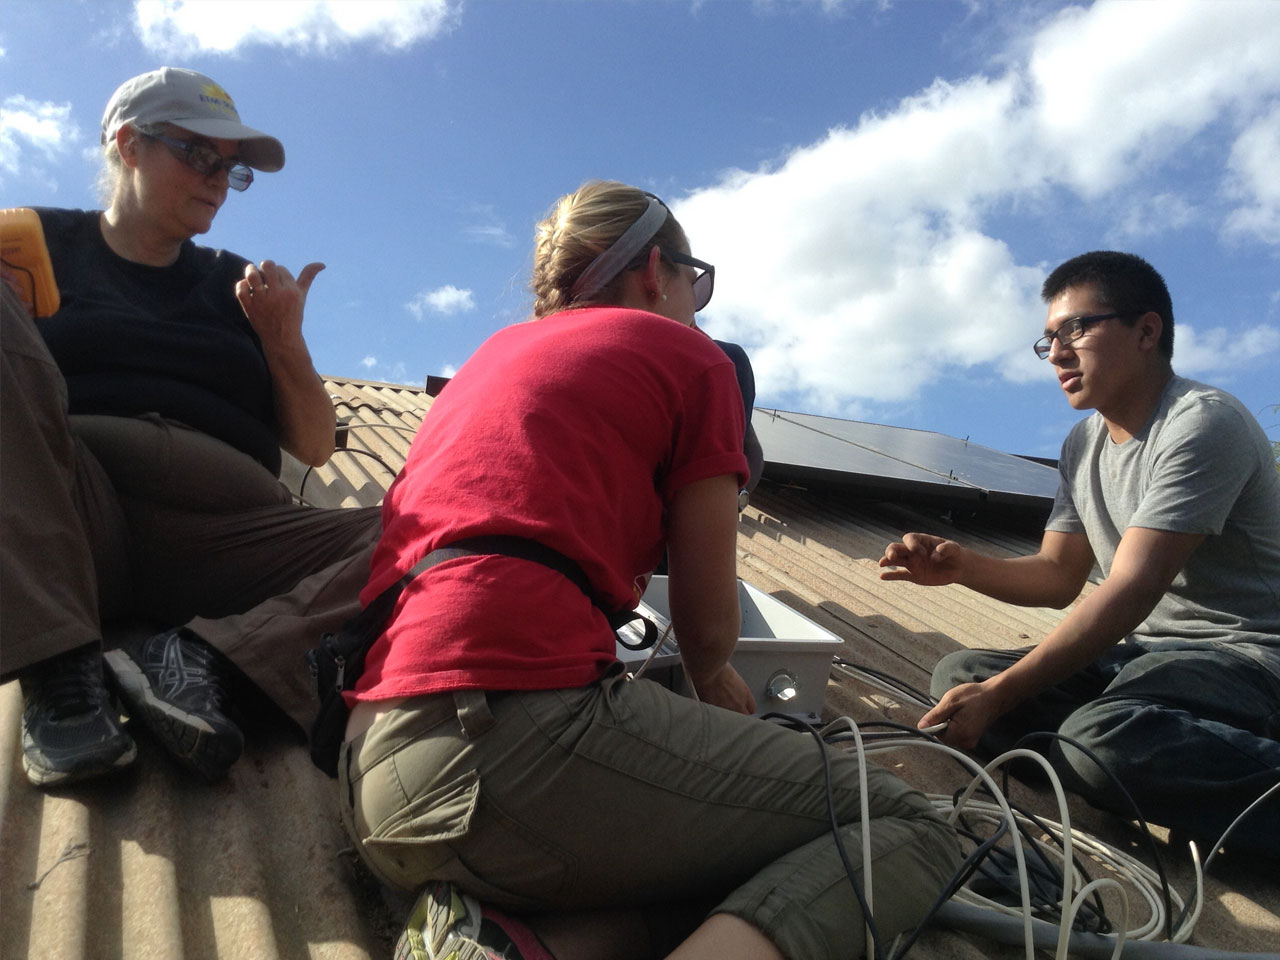 SUNY Broome students install solar panels on a roof in Haiti